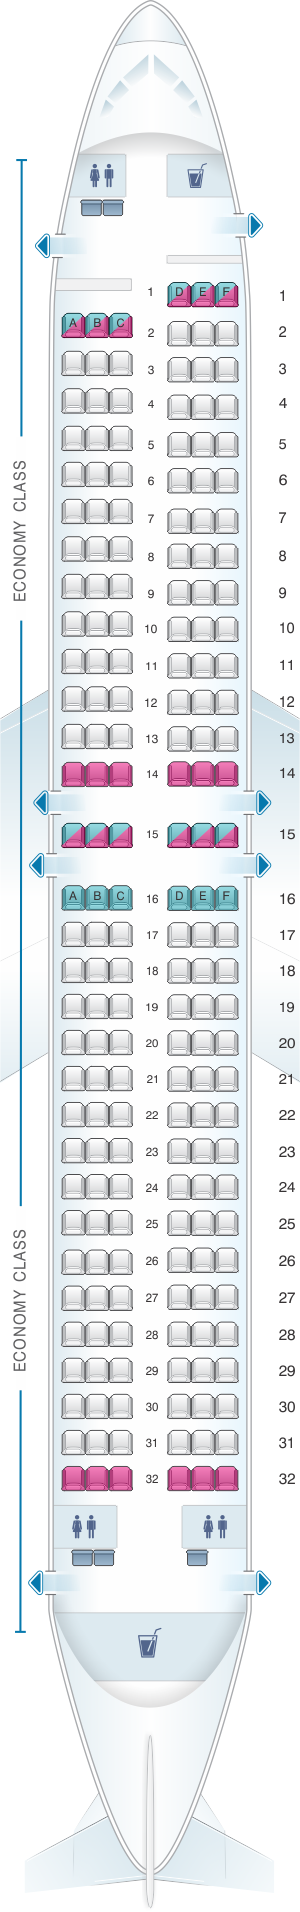 Seat map for Rossiya Airlines Boeing B737 800 189PAX V2